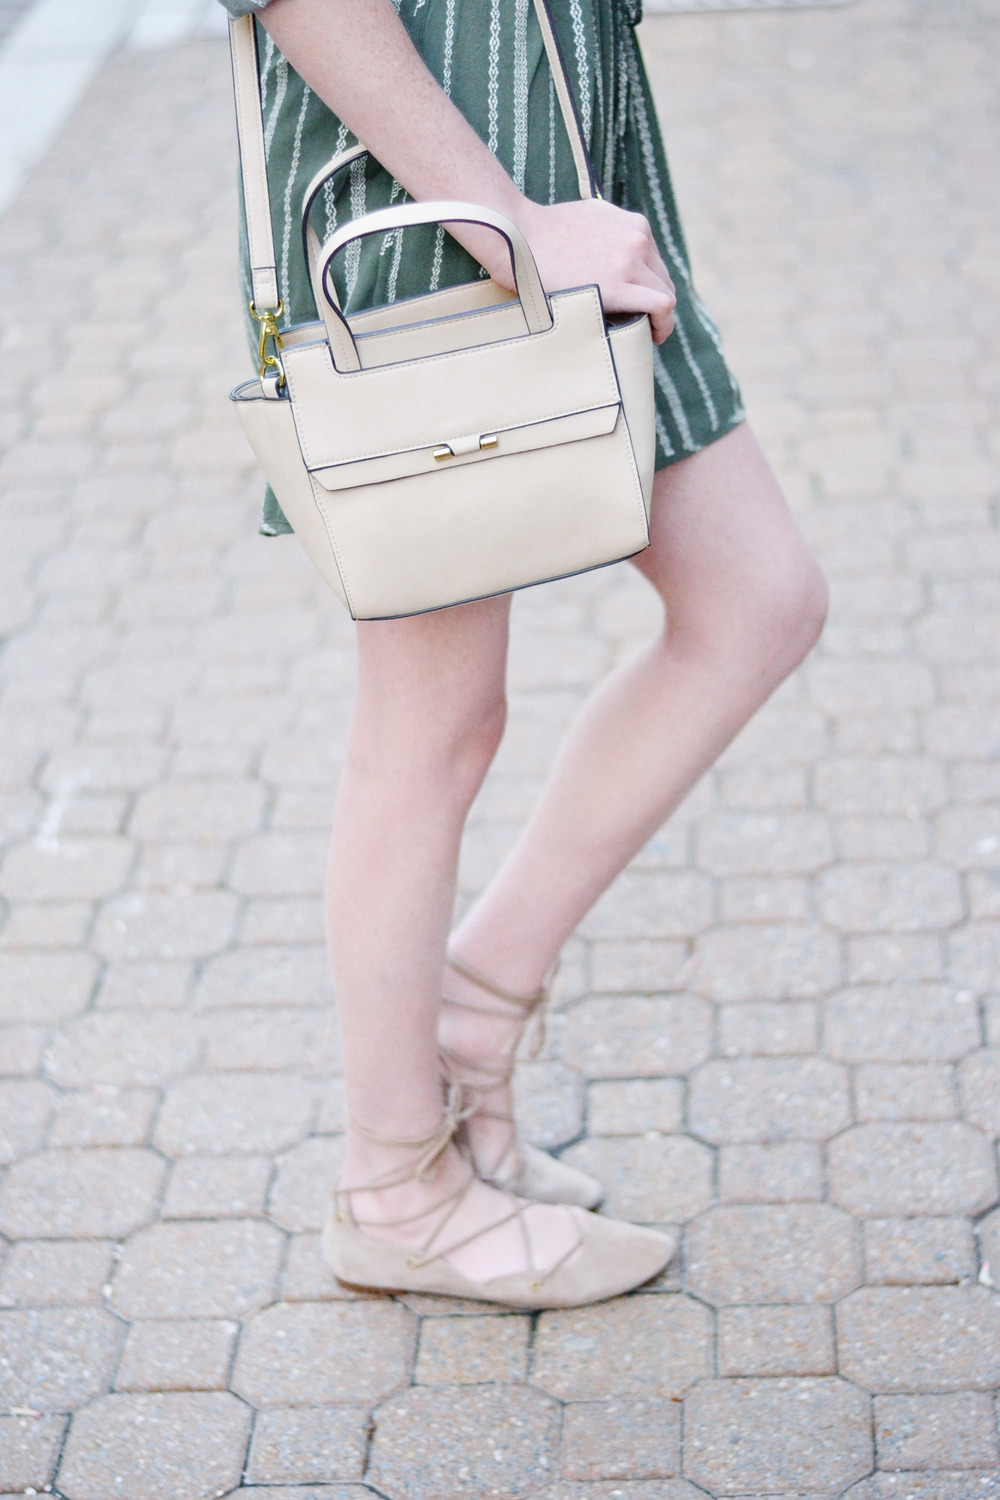 Palm Green Shirtdress & Nude Lace Up Flats (via Chic Now)